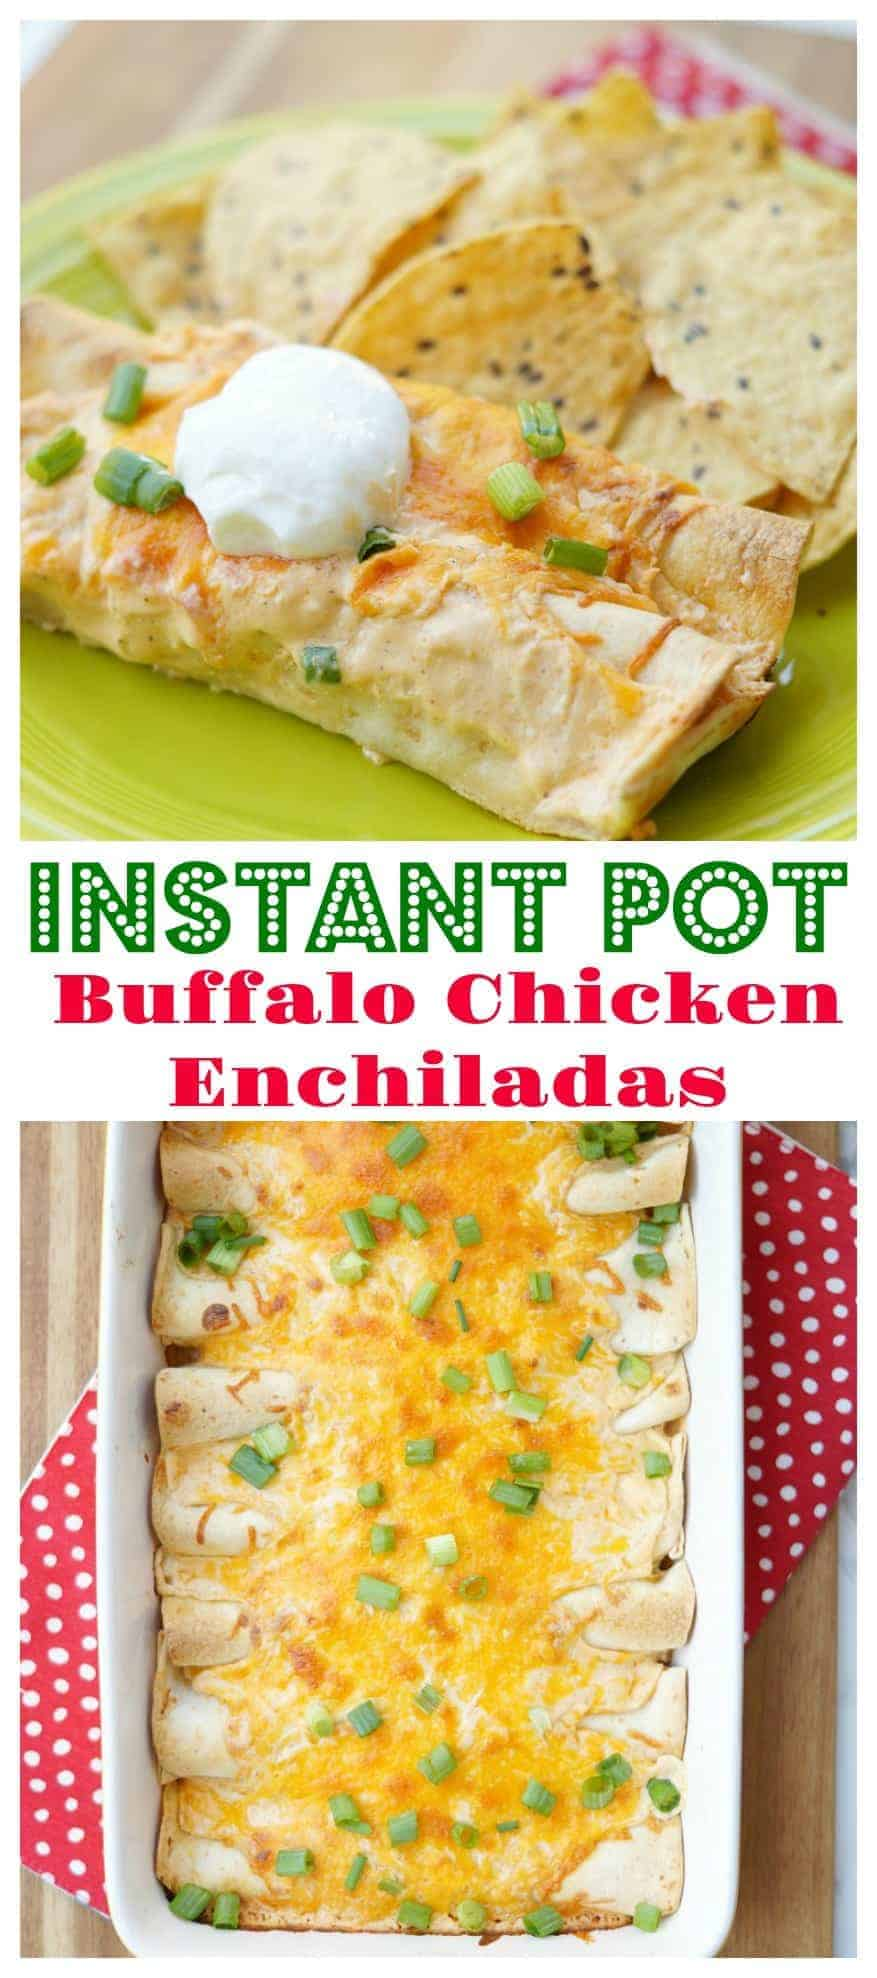 Instant Pot Buffalo Chicken Enchilada Recipe! Tangy and creamy buffalo chicken is prepared in the Instant Pot, then gets rolled up with cheese and baked! A simple, but delicious chicken dinner recipe! NOTE: this can also be made in the Slow Cooker or stove top)